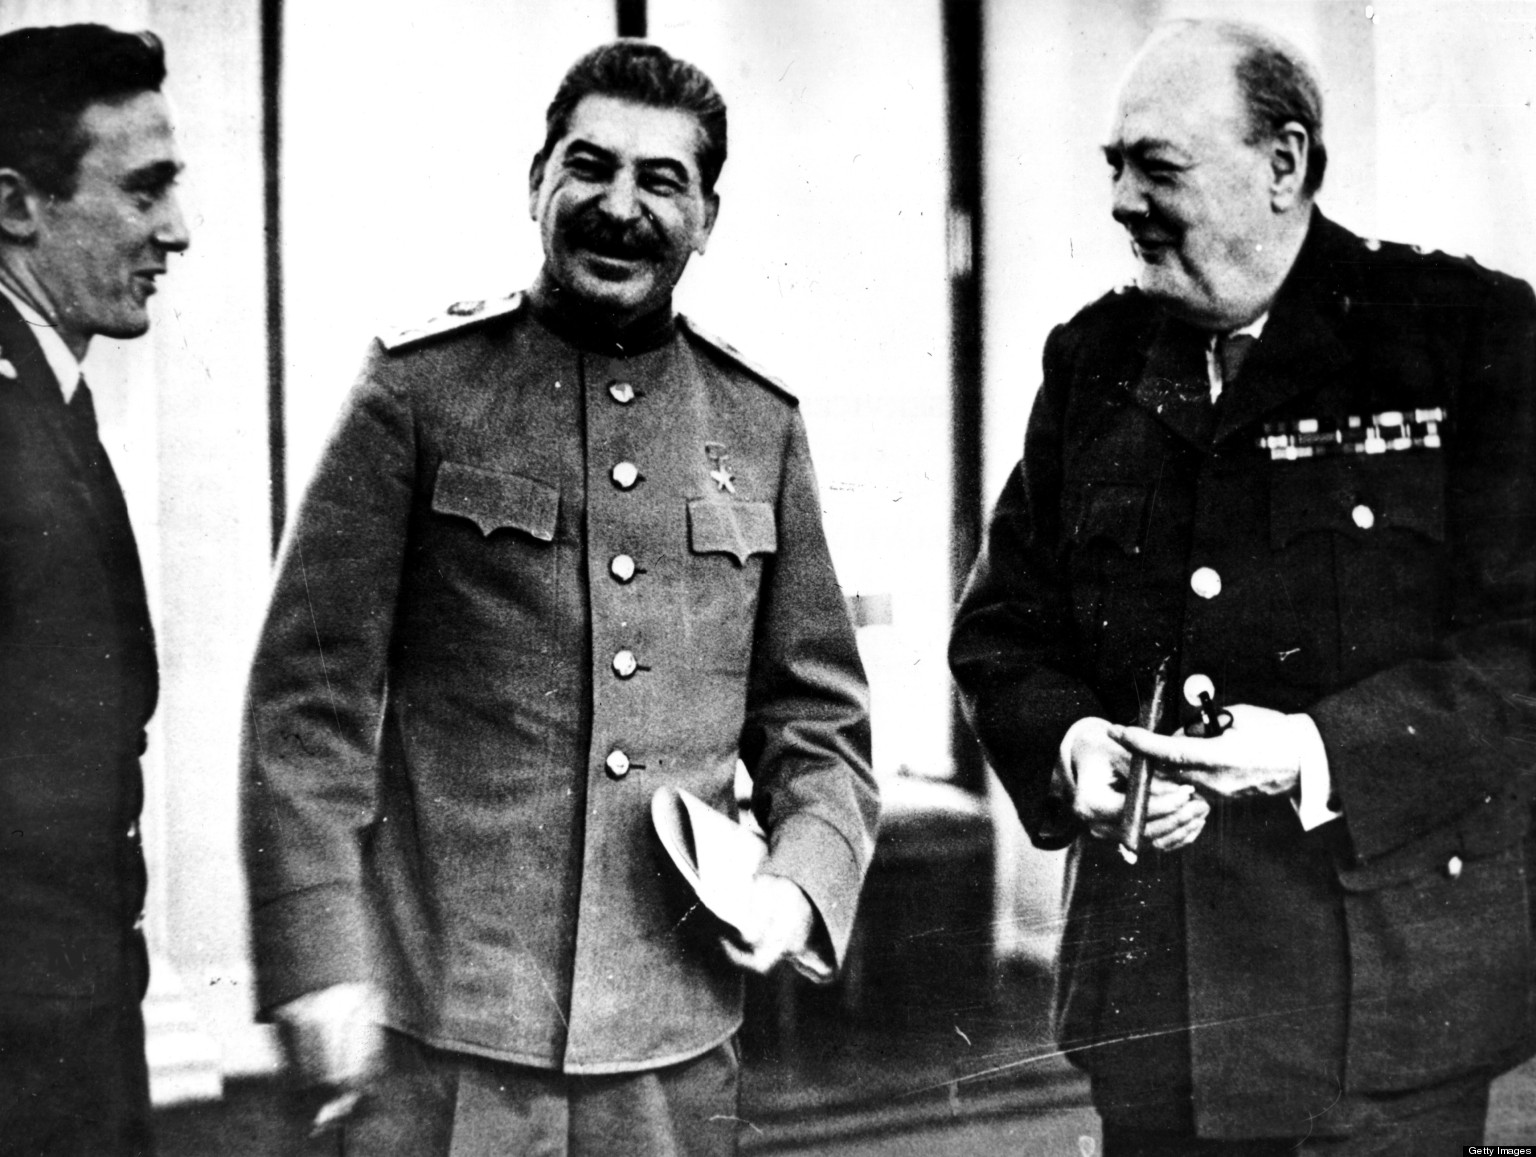 Yalta Conference, Joseph V, Stalin and Winston S, Churchill, February 1945, World War II, Washington, Library of Congress.